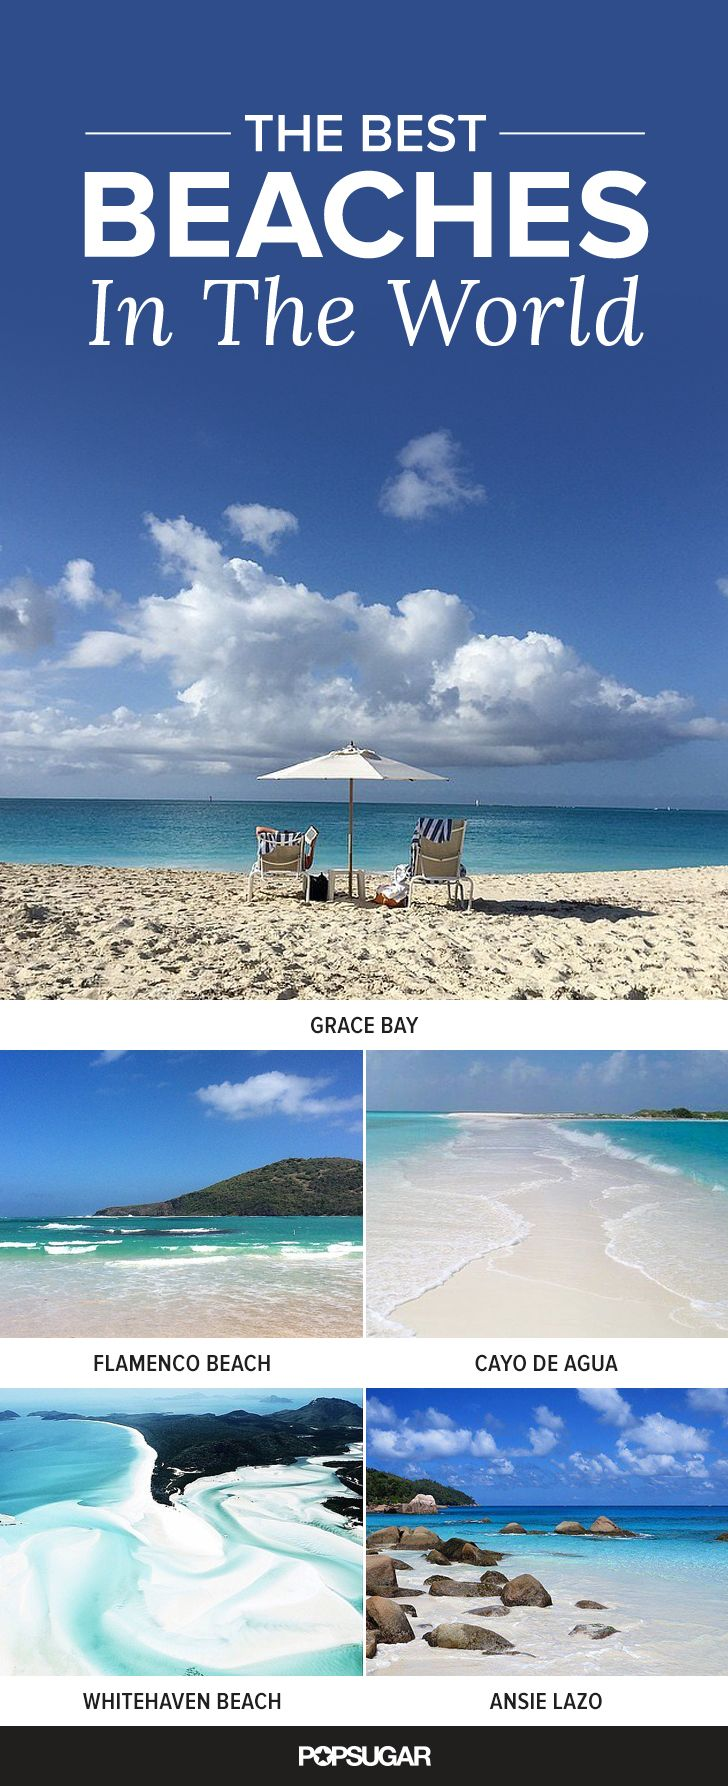 25 breathtaking beaches you must visit before you die places to go pinterest reisen. Black Bedroom Furniture Sets. Home Design Ideas